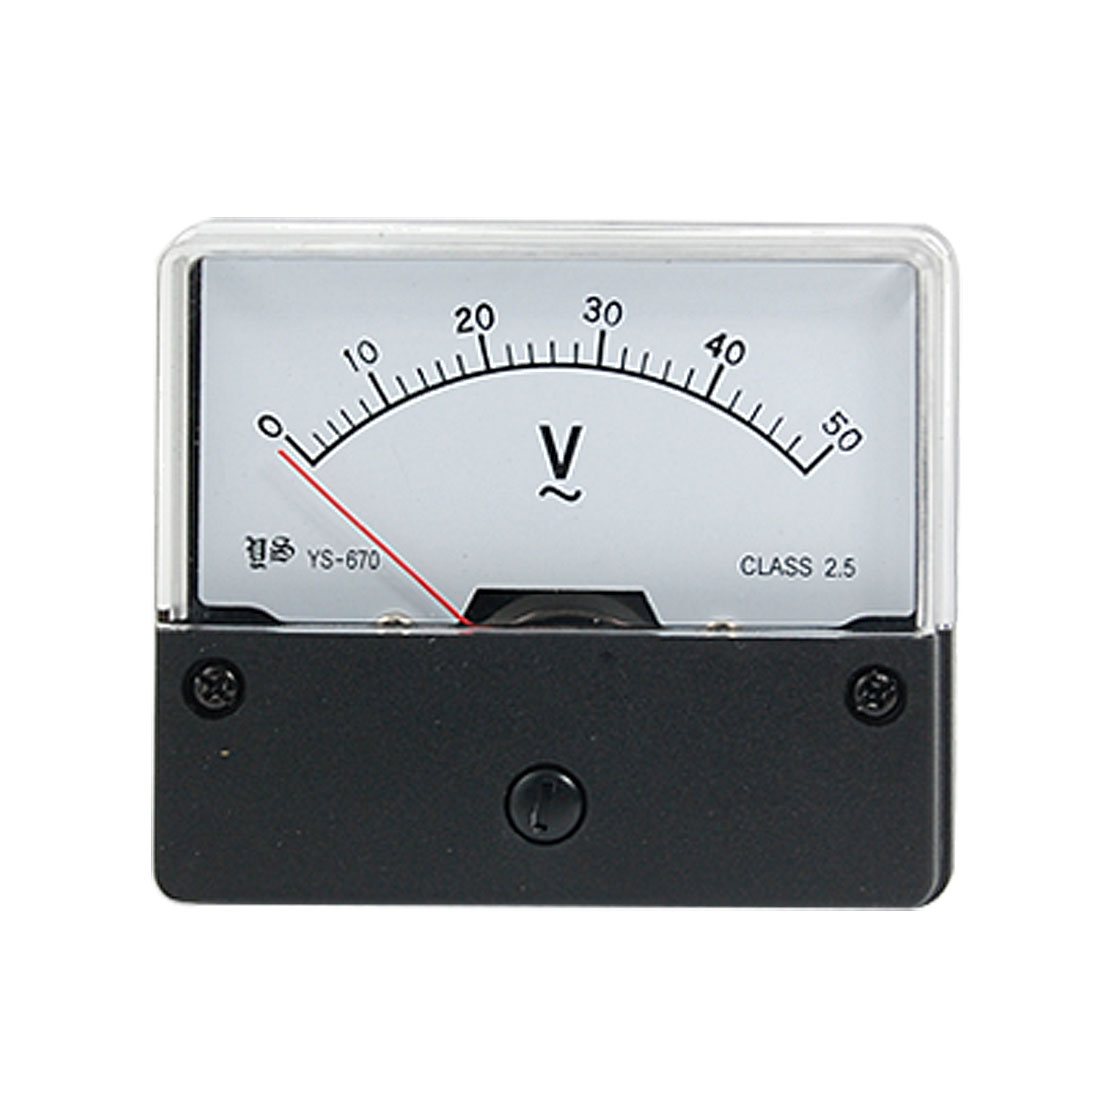 AC0-50V Class 2.5 Accuracy Analog Voltage Panel Meter New